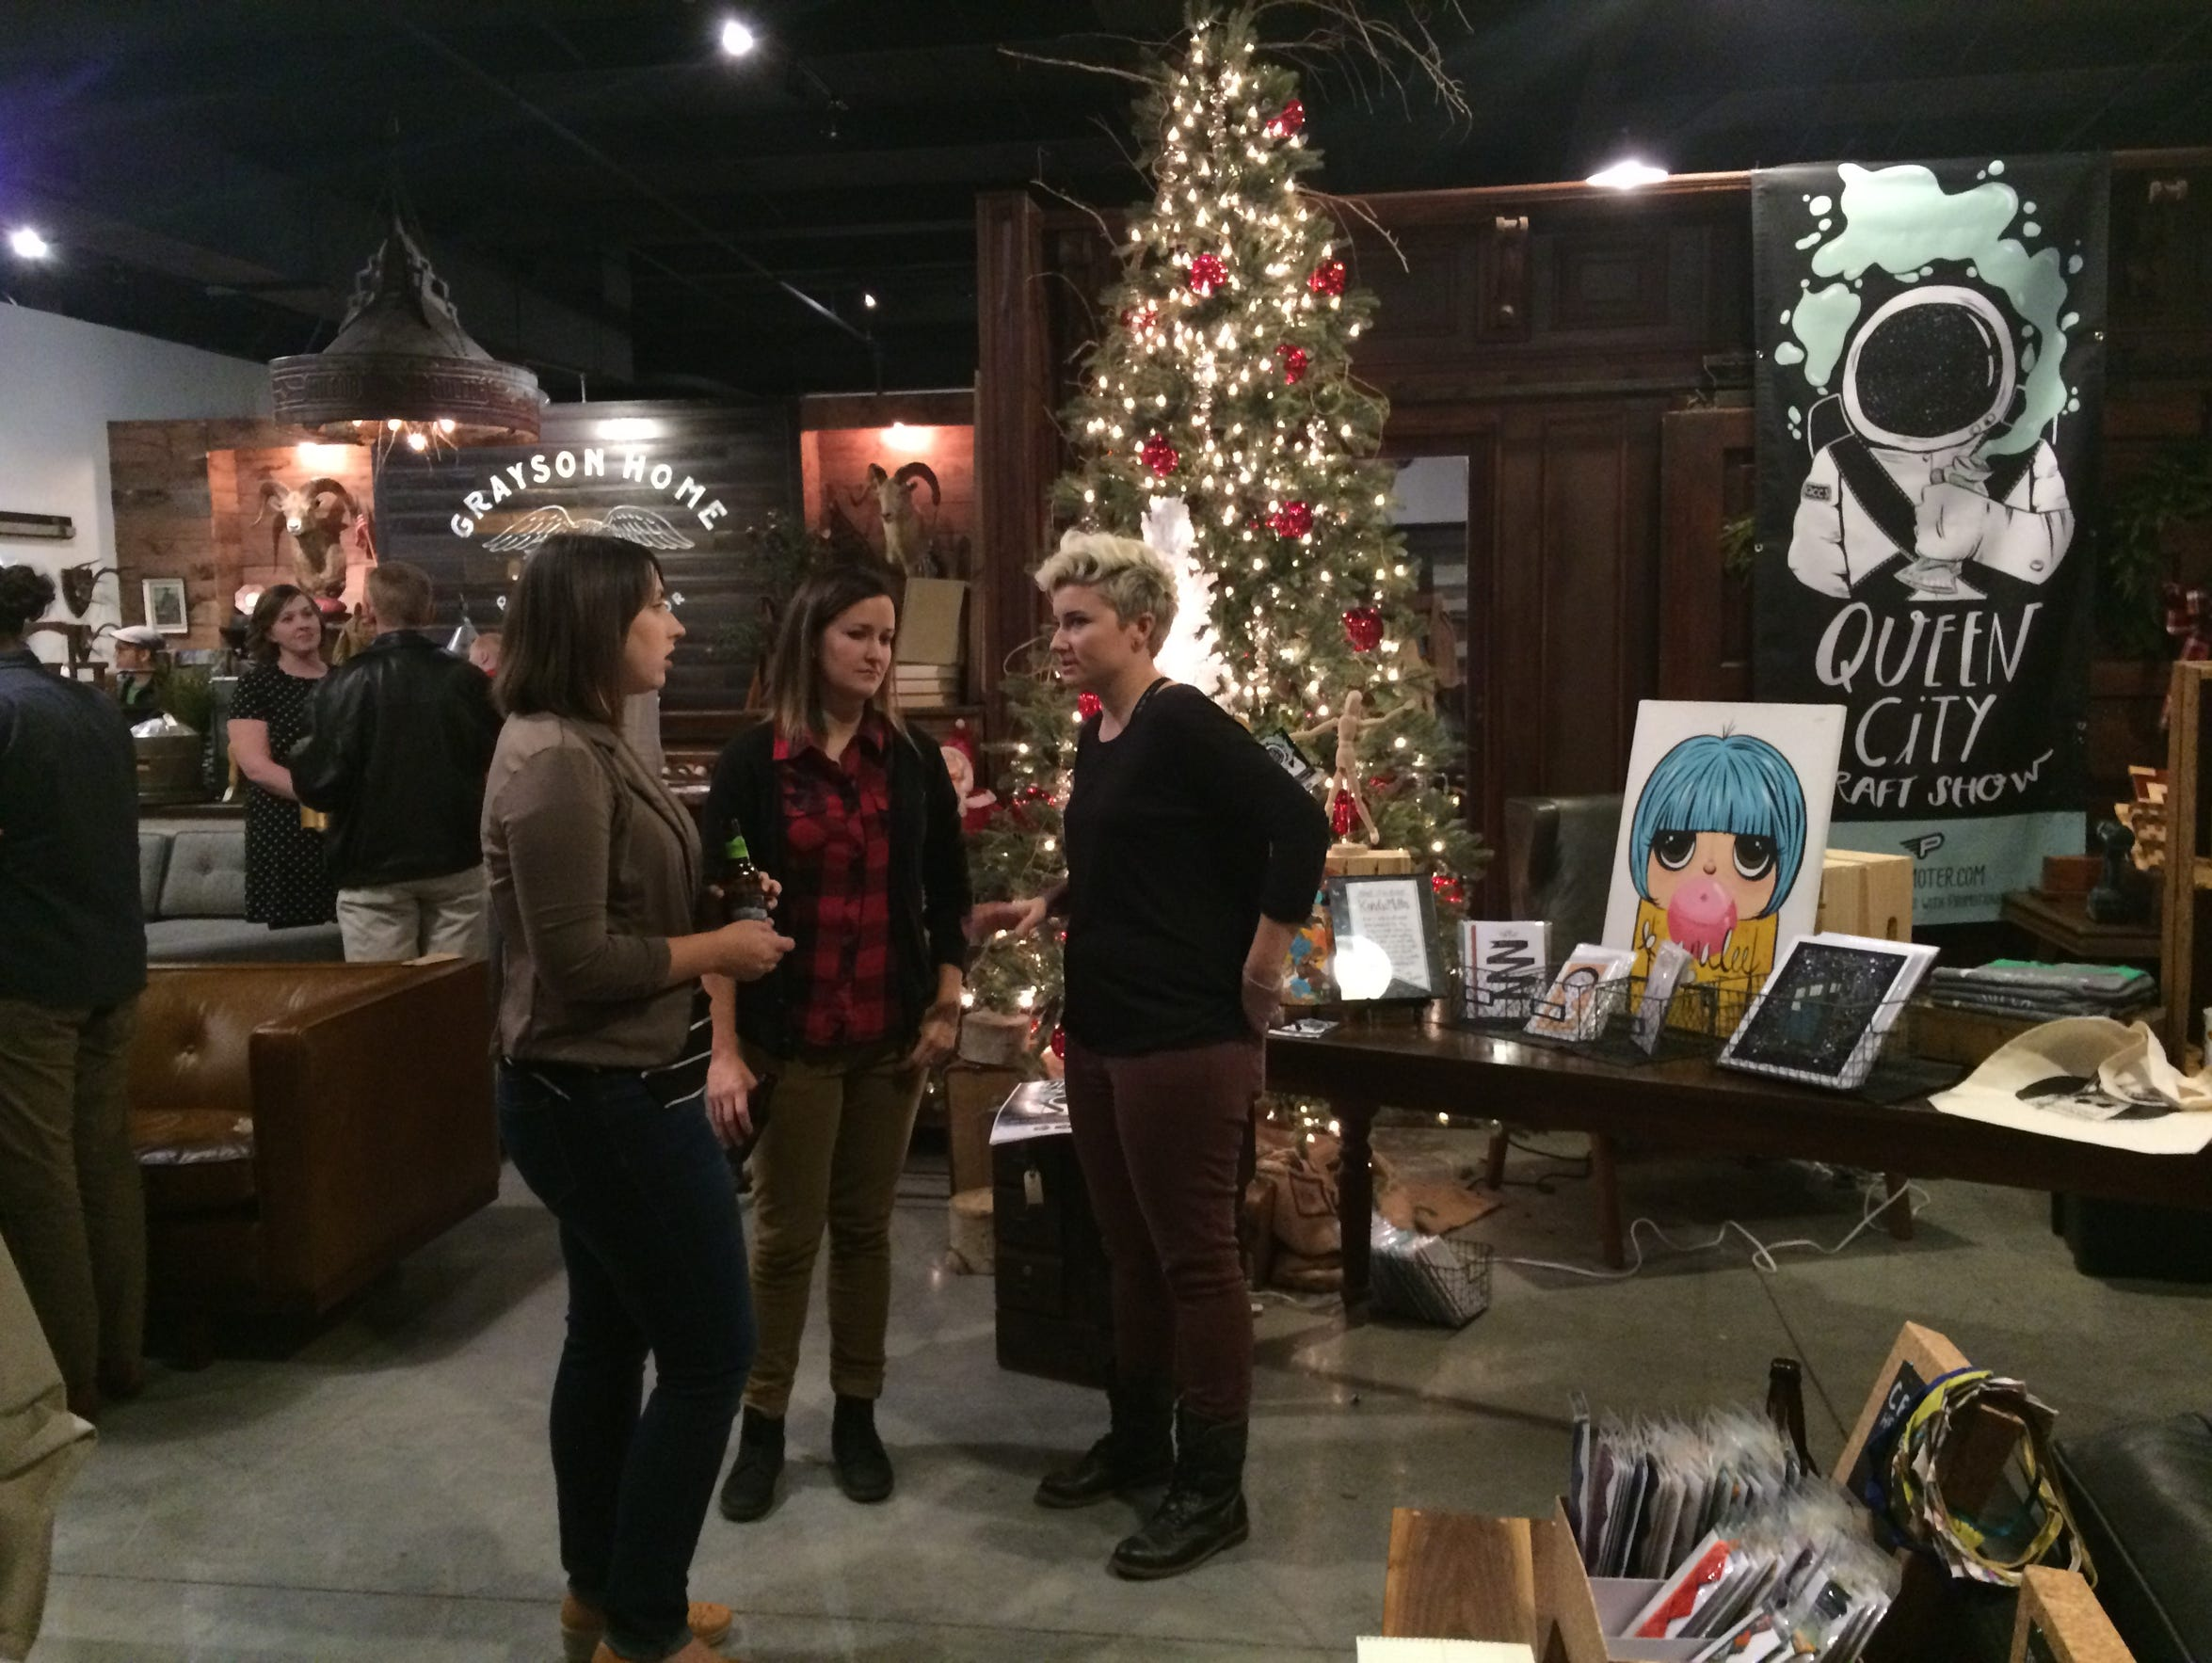 Queen City Craft Show is an Esty-like pop-up shop happening